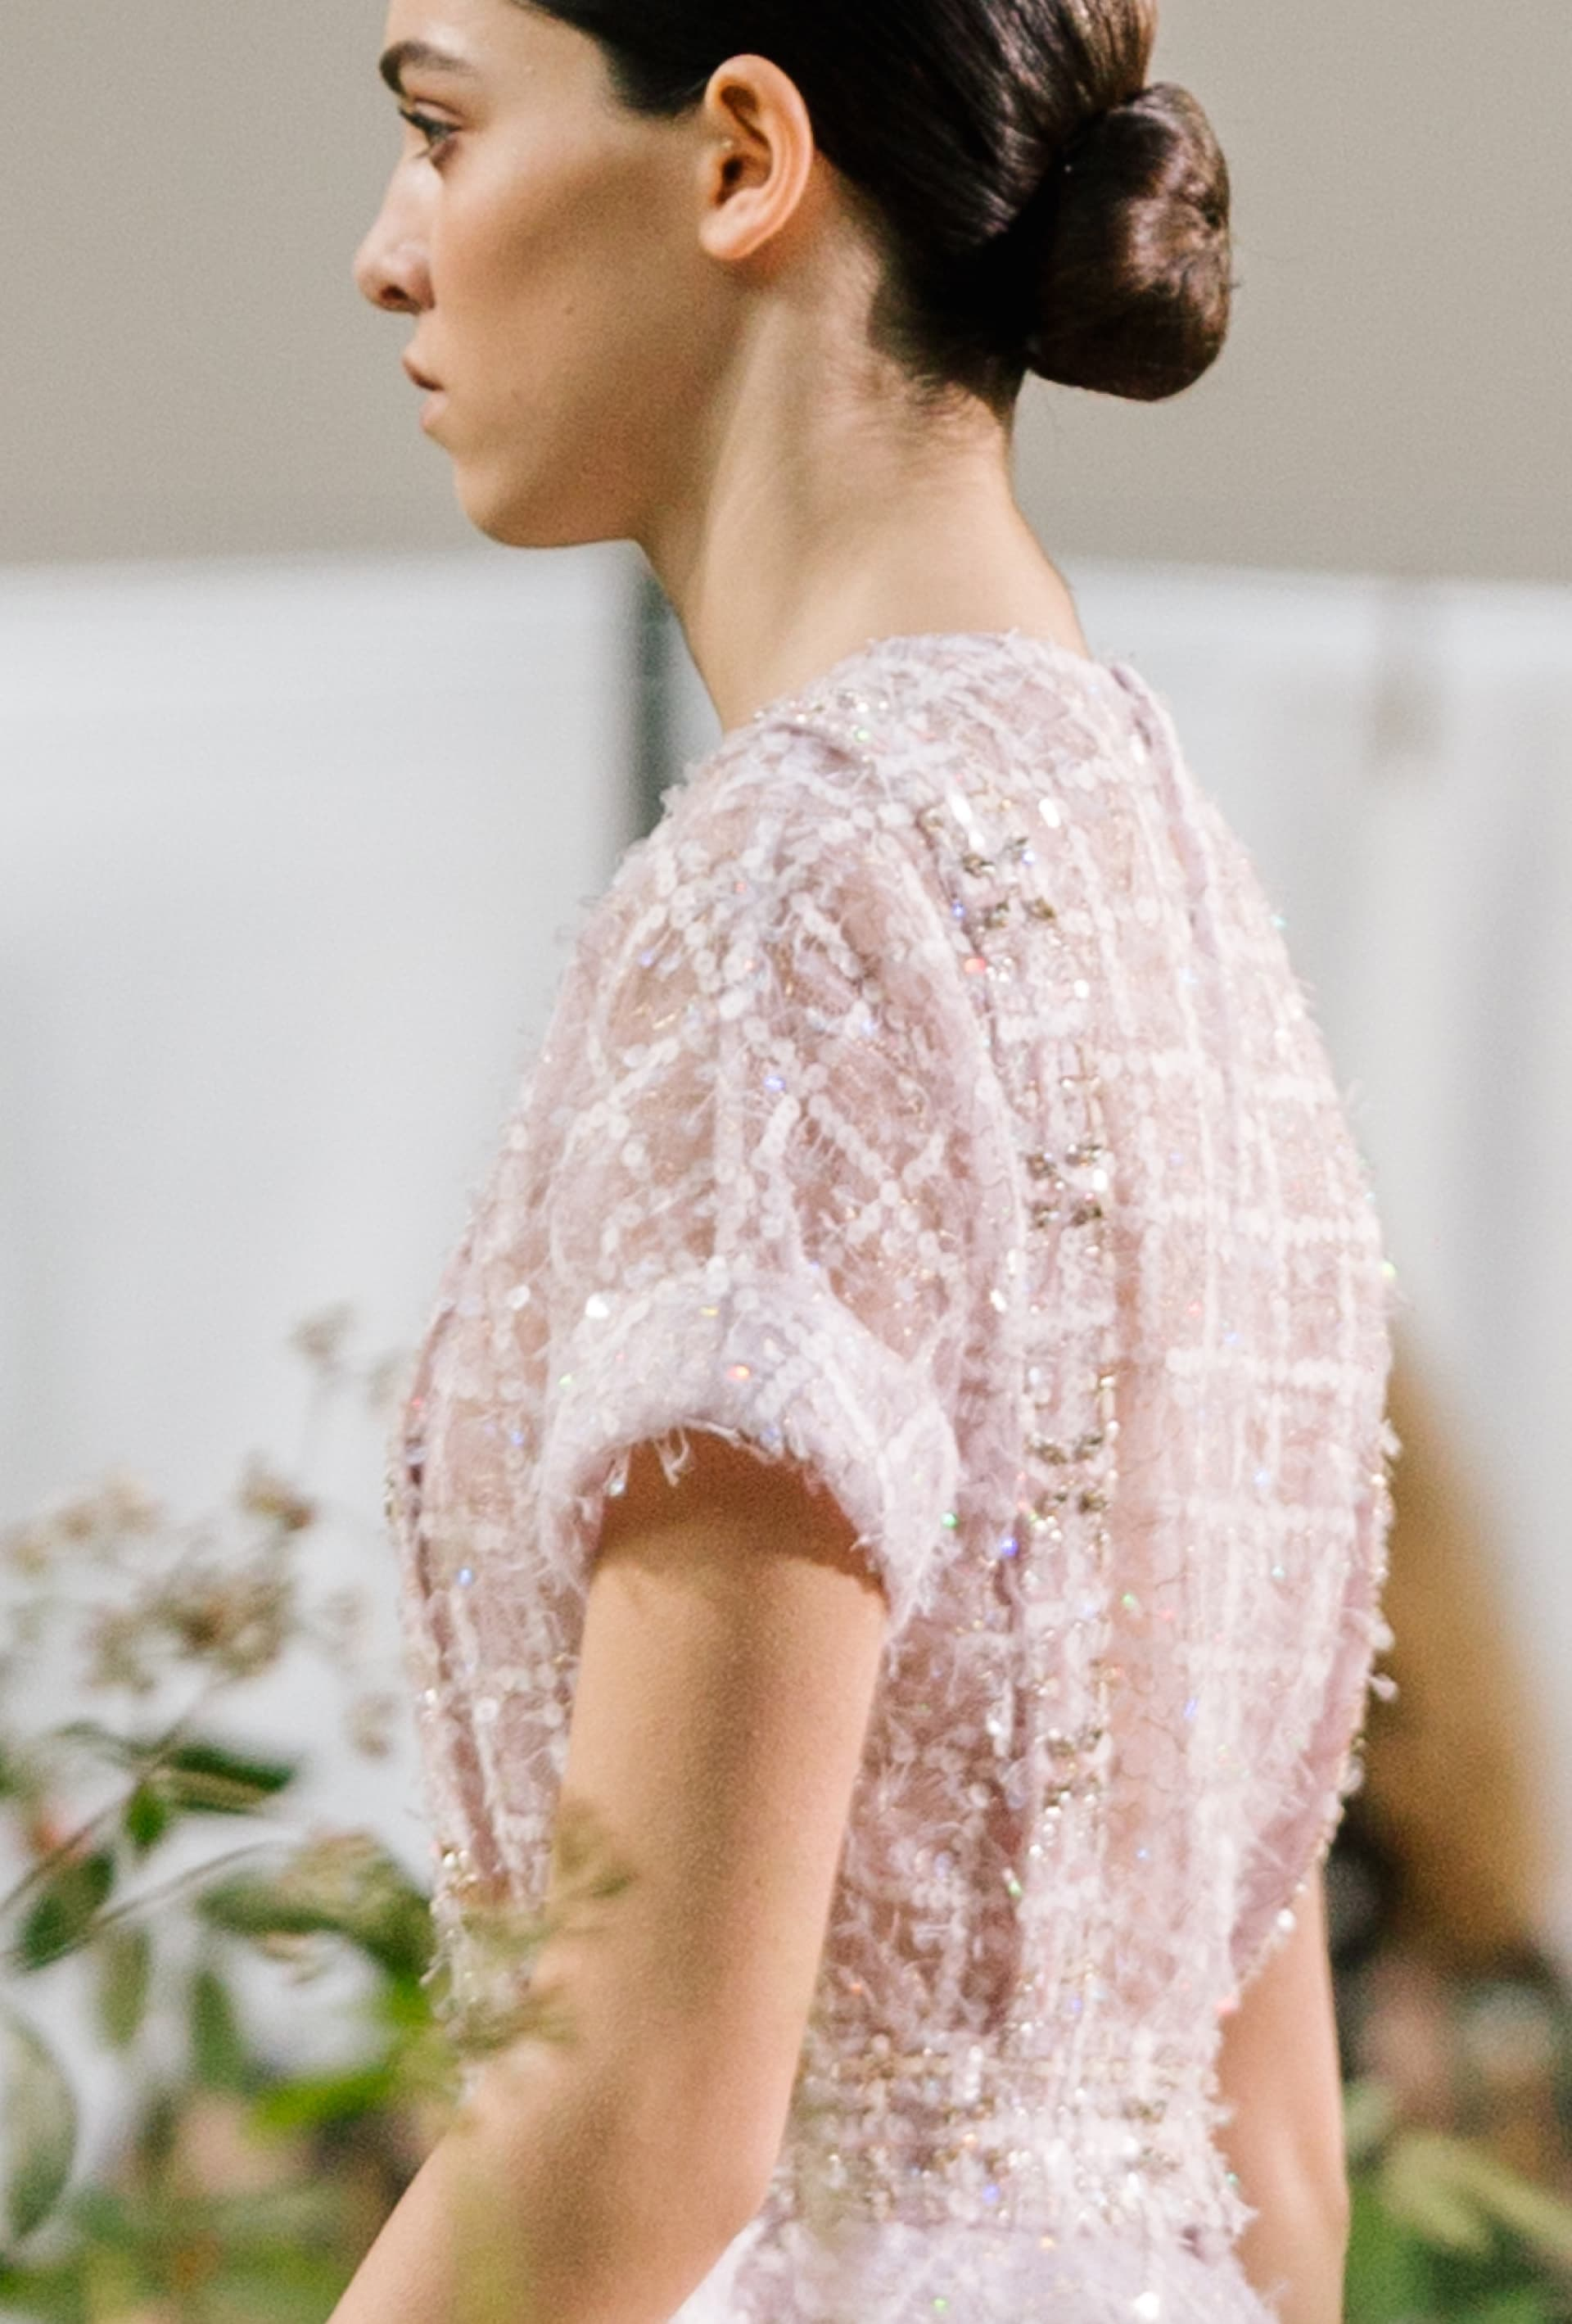 View 2 - Look 47 - Spring-Summer 2020 Haute Couture - see full sized version